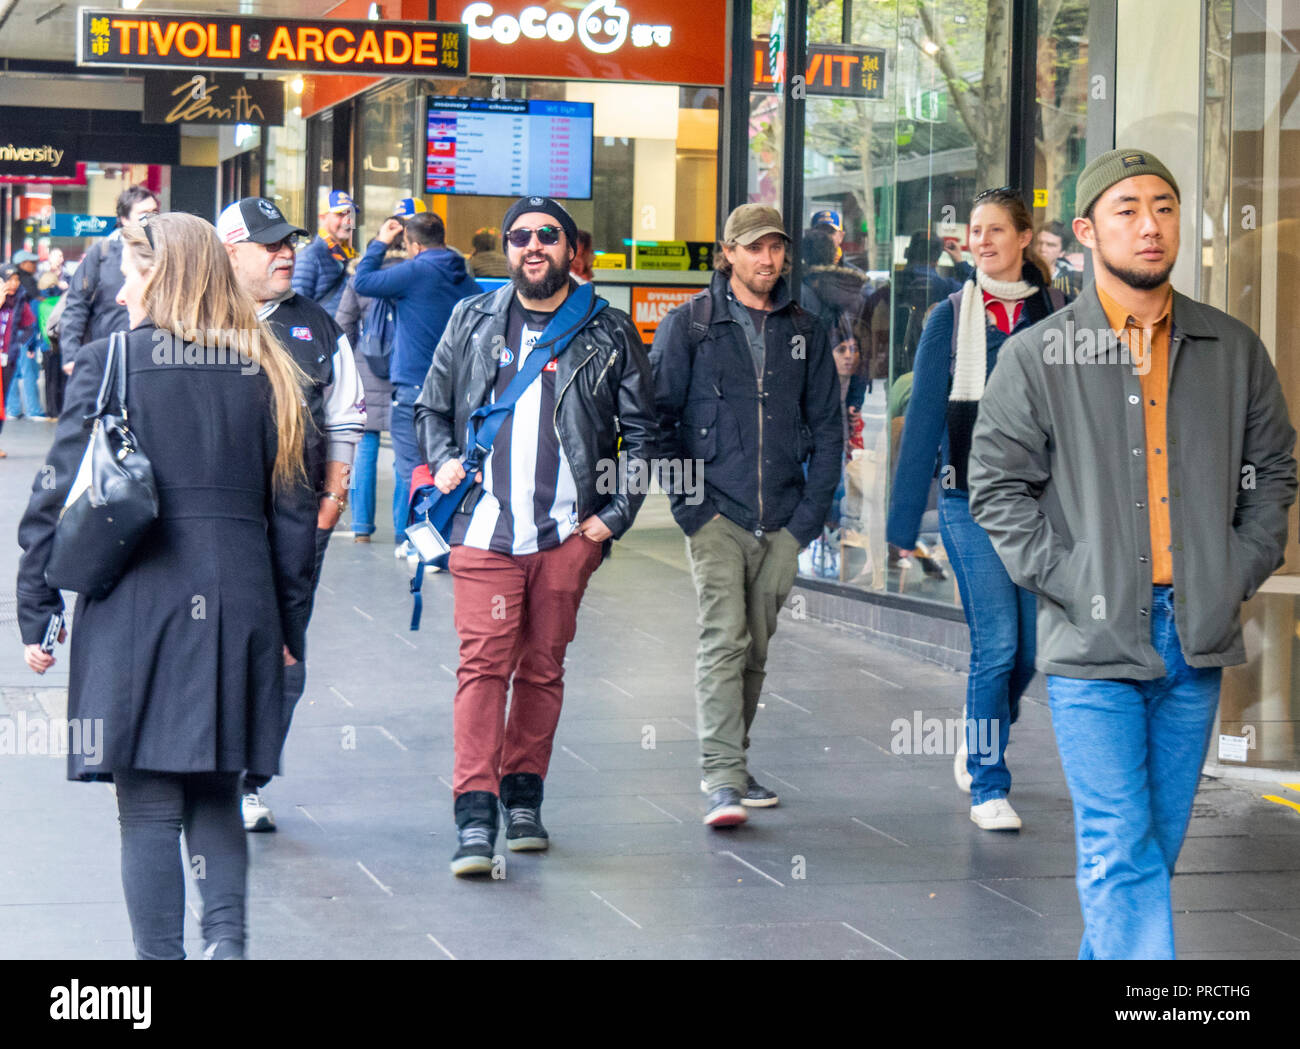 2018 AFL Grand Final Parade, Melbourne Victoria Australia. - Stock Image